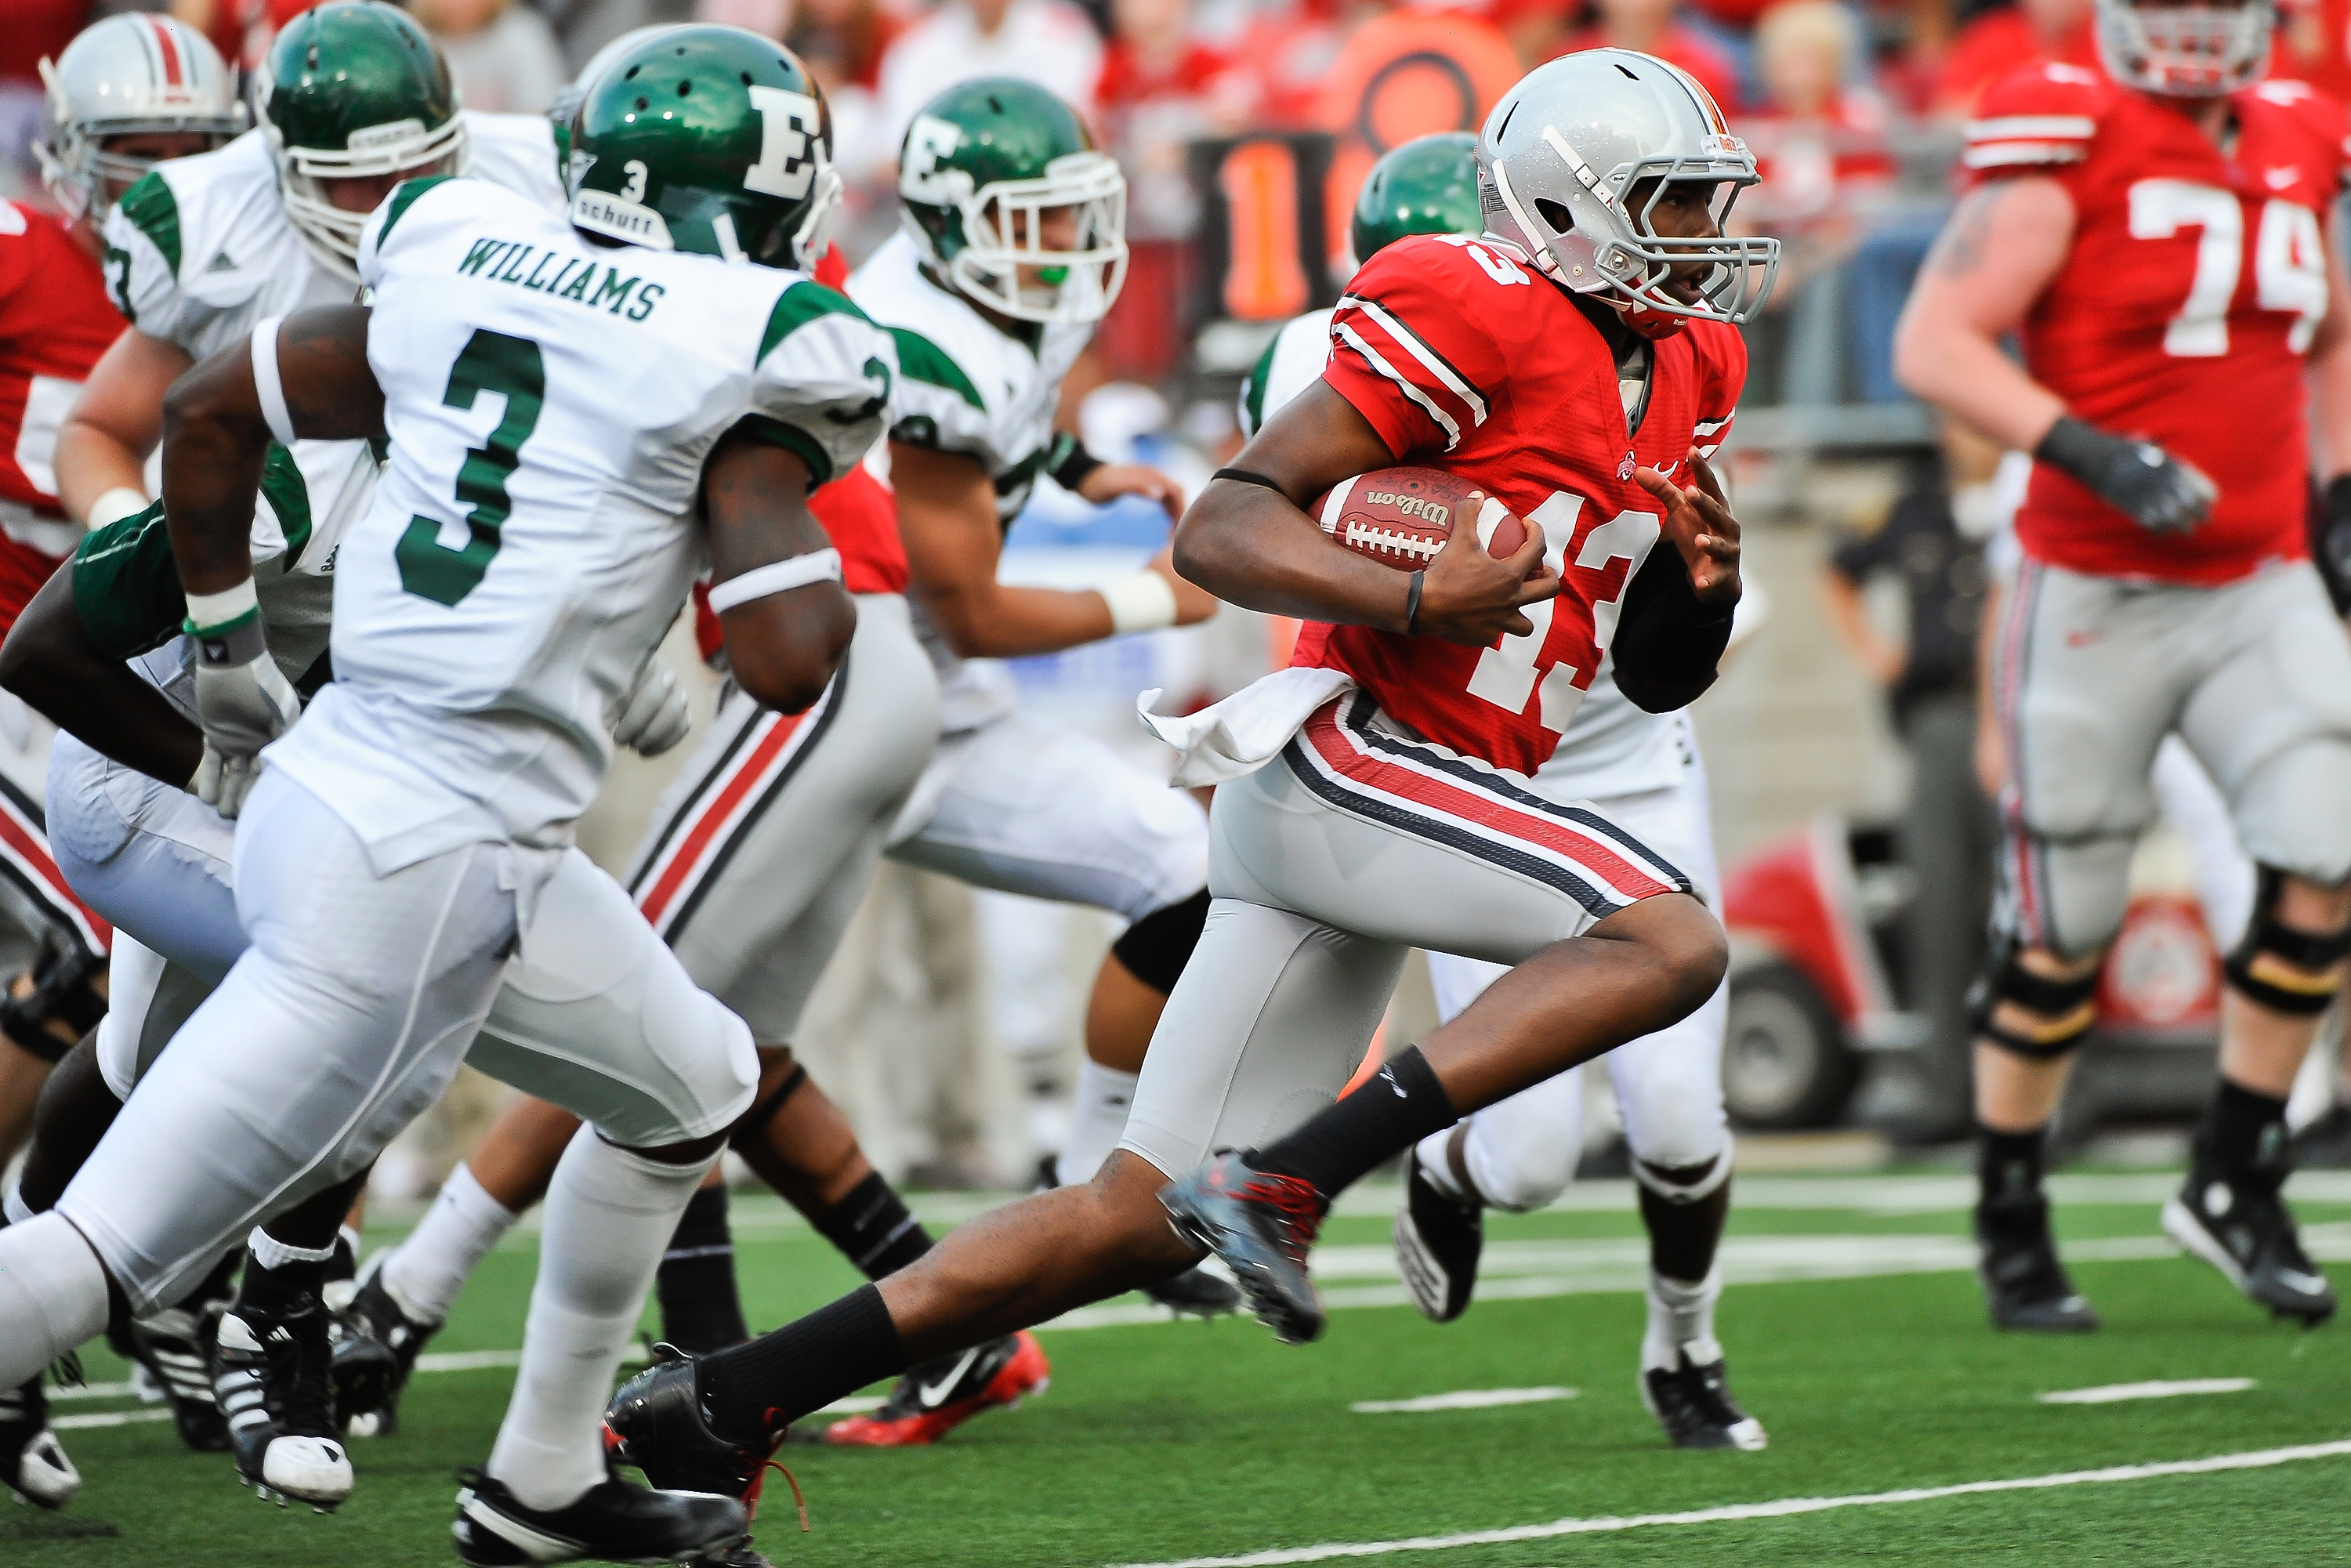 COLUMBUS, OH - SEPTEMBER 25:  Ken Guiton #13 of the Ohio State Buckeyes runs with the ball against the Eastern Michigan Eagles at Ohio Stadium on September 25, 2010 in Columbus, Ohio.  Ohio State won 73-20. (Photo by Jamie Sabau/Getty Images)